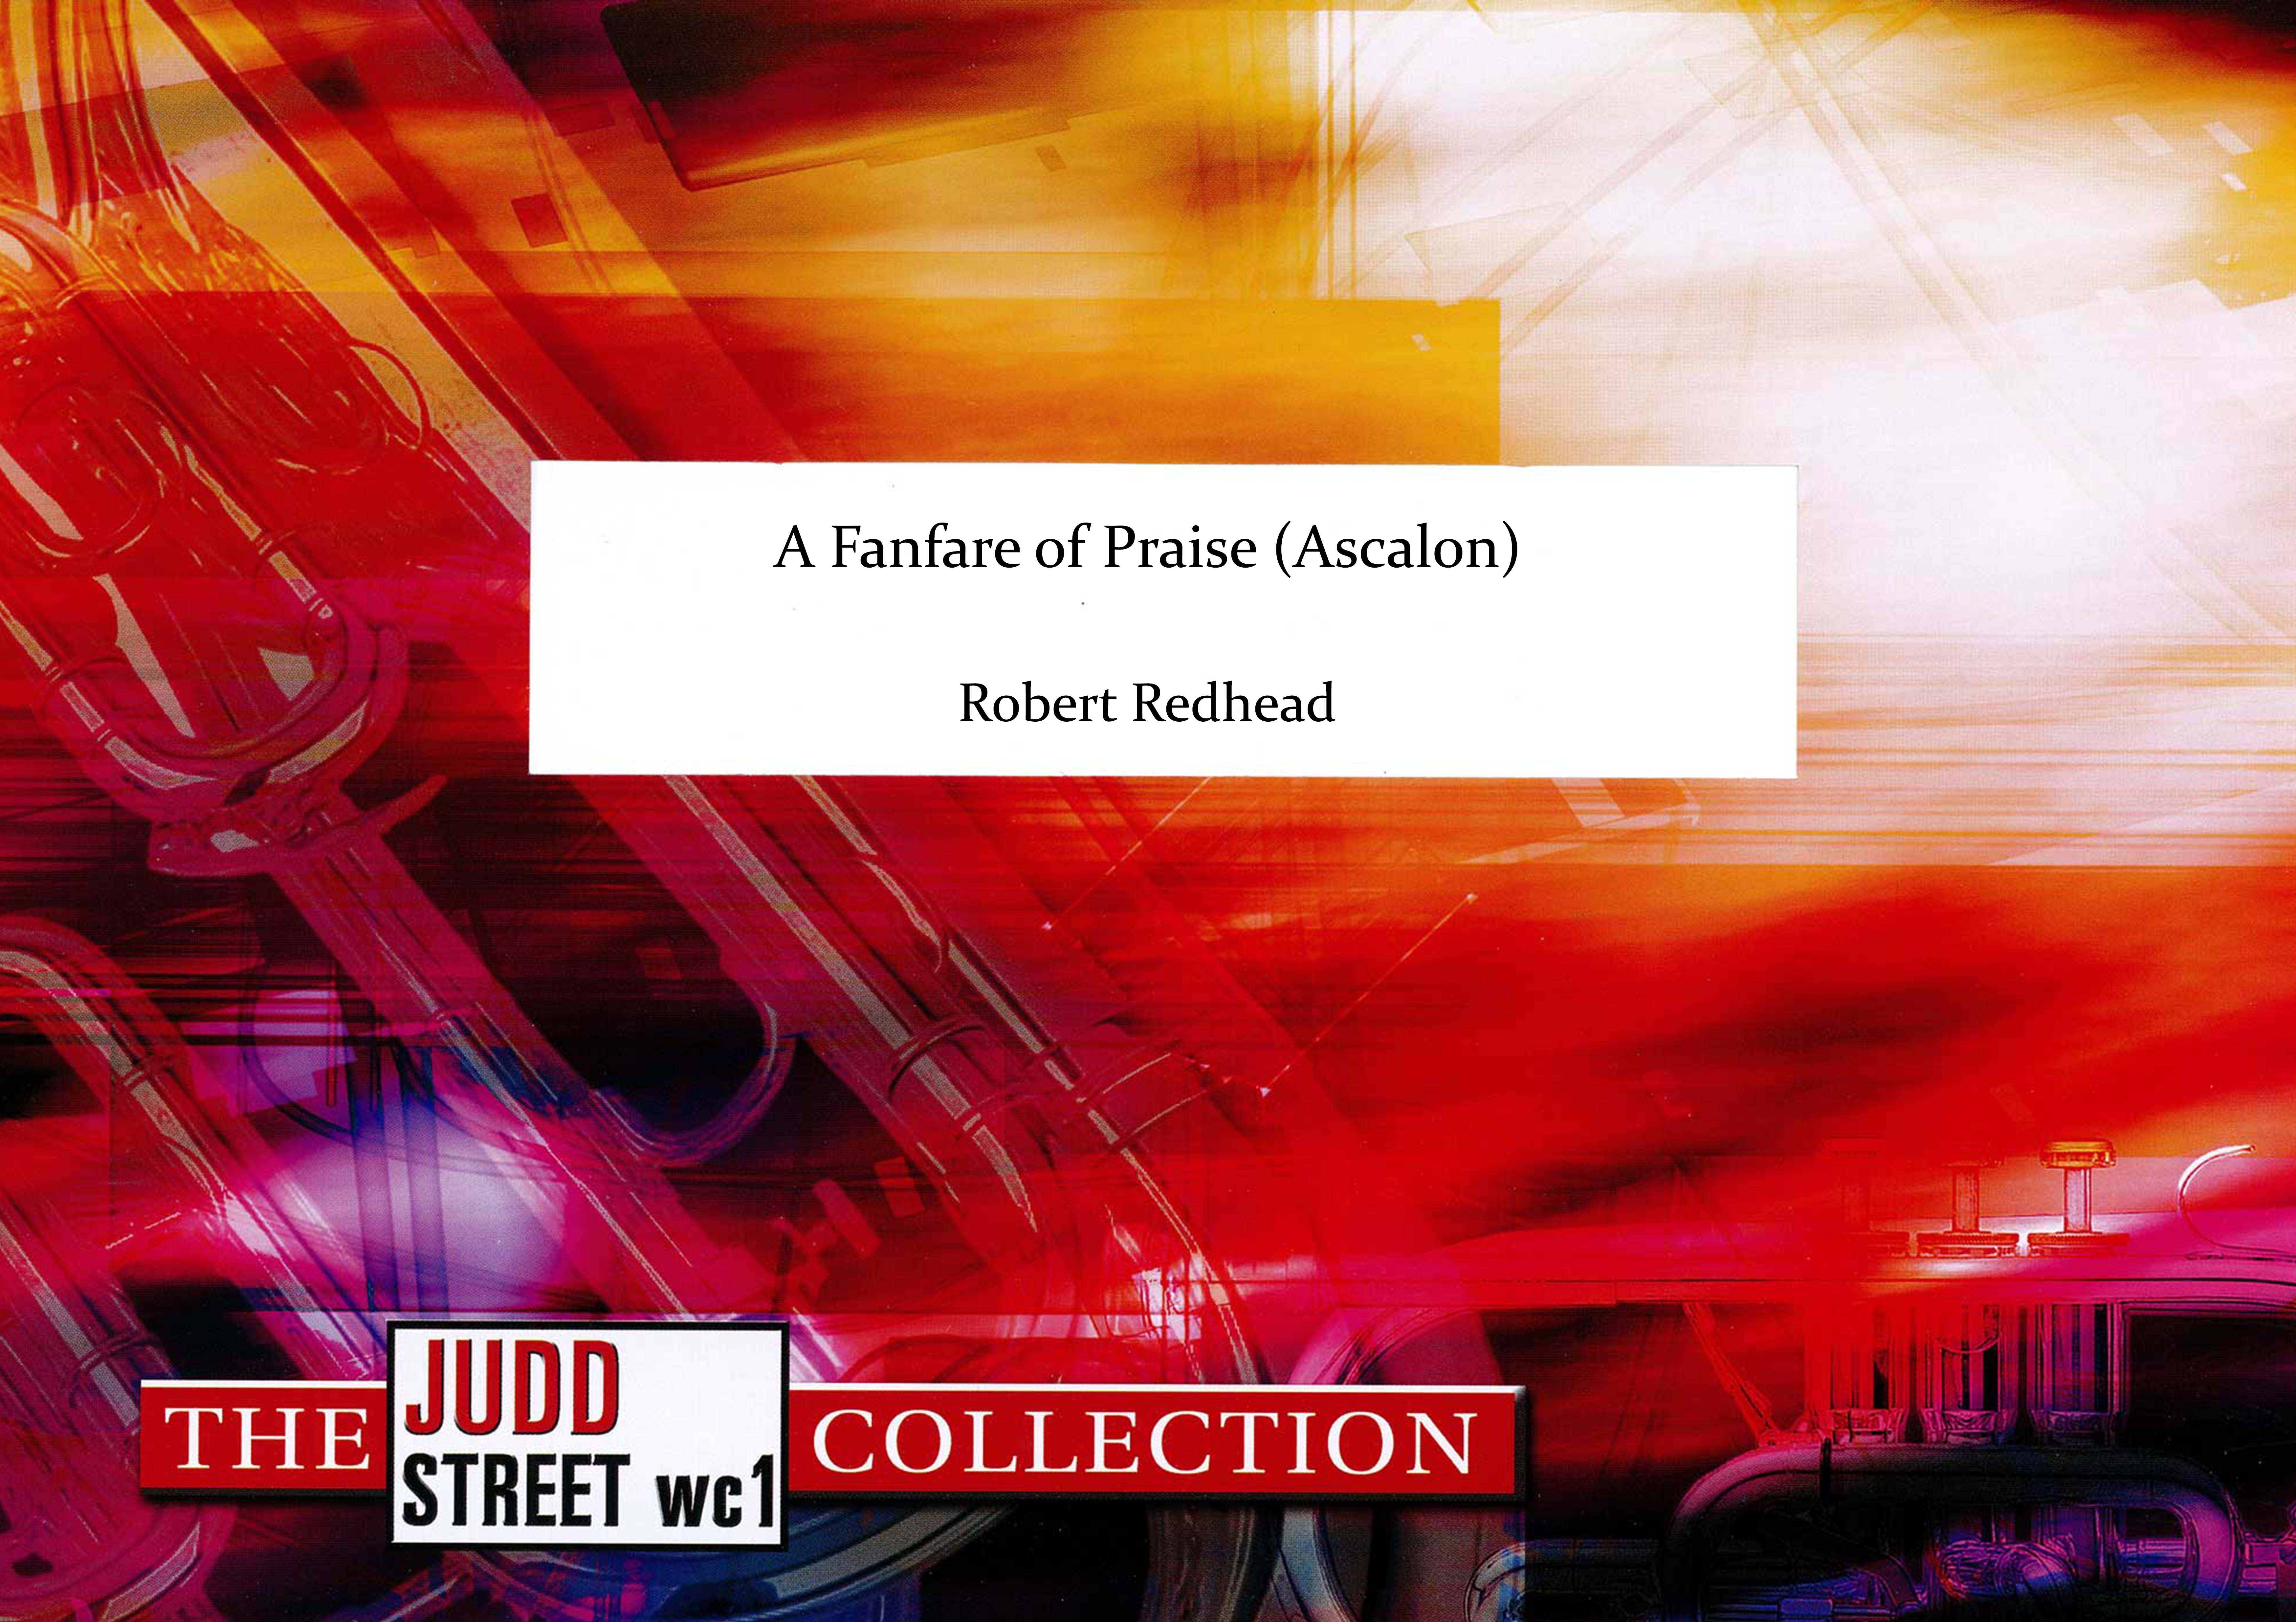 A Fanfare of Praise (Ascalon) (Brass Band - Score and Parts)